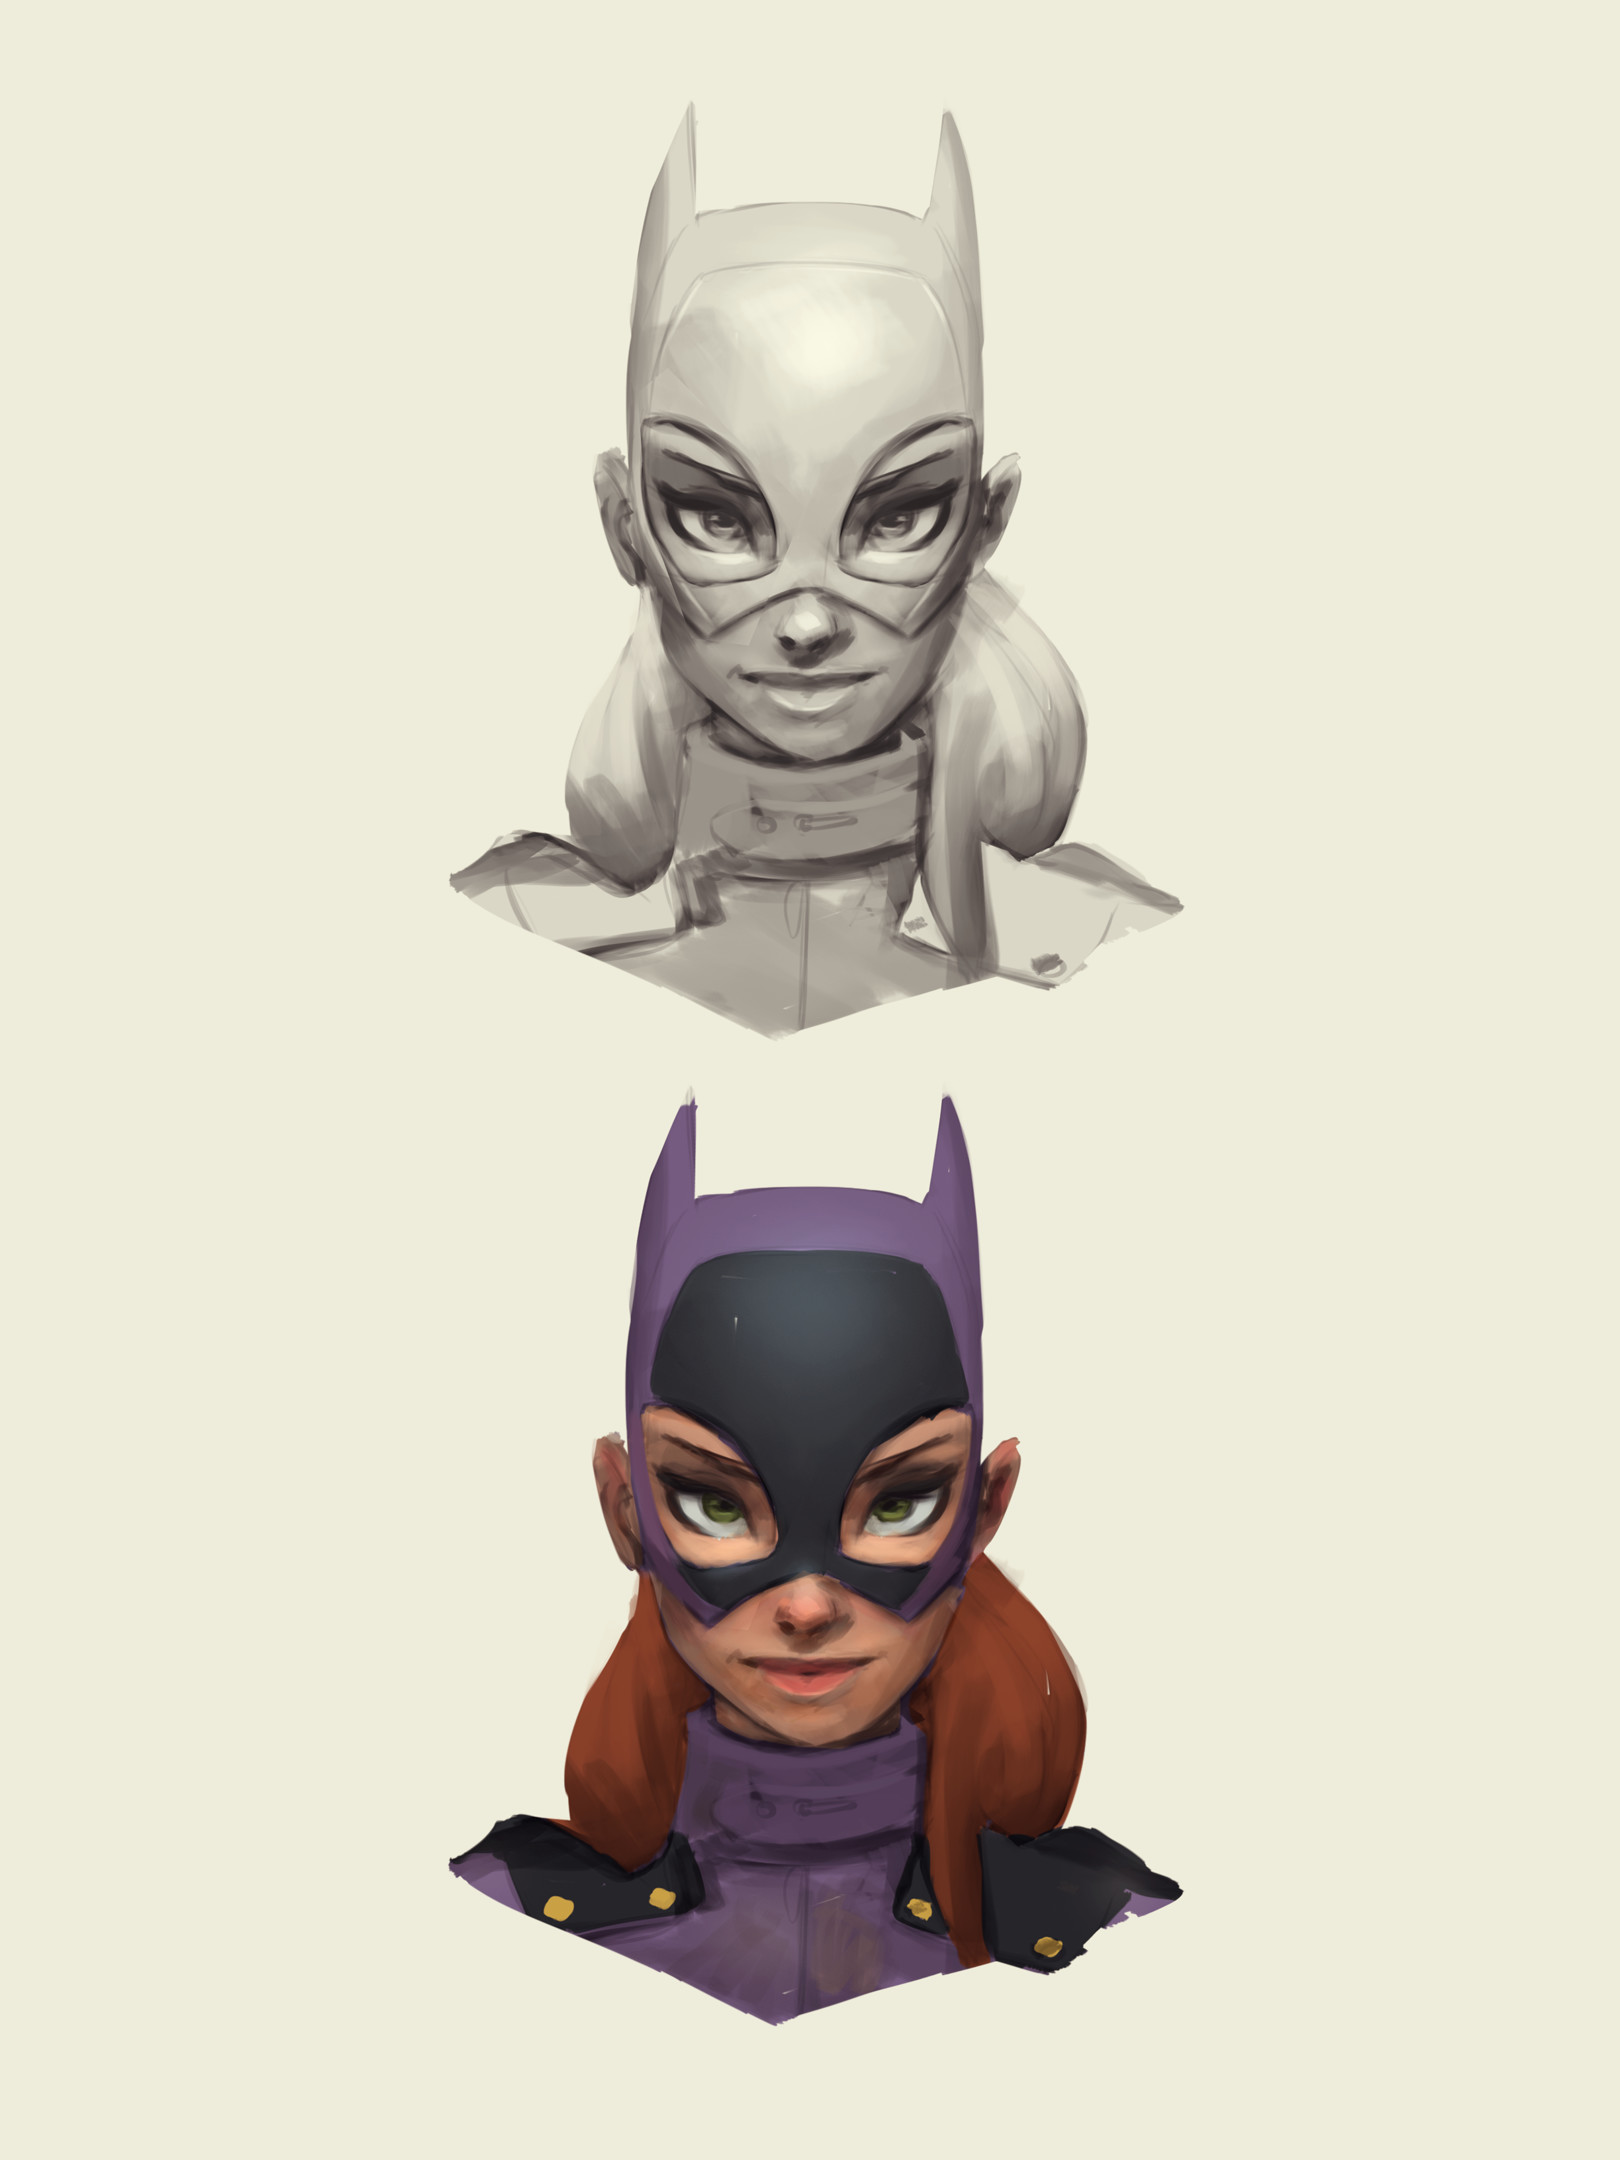 Corey smith batgirl artstationconcept